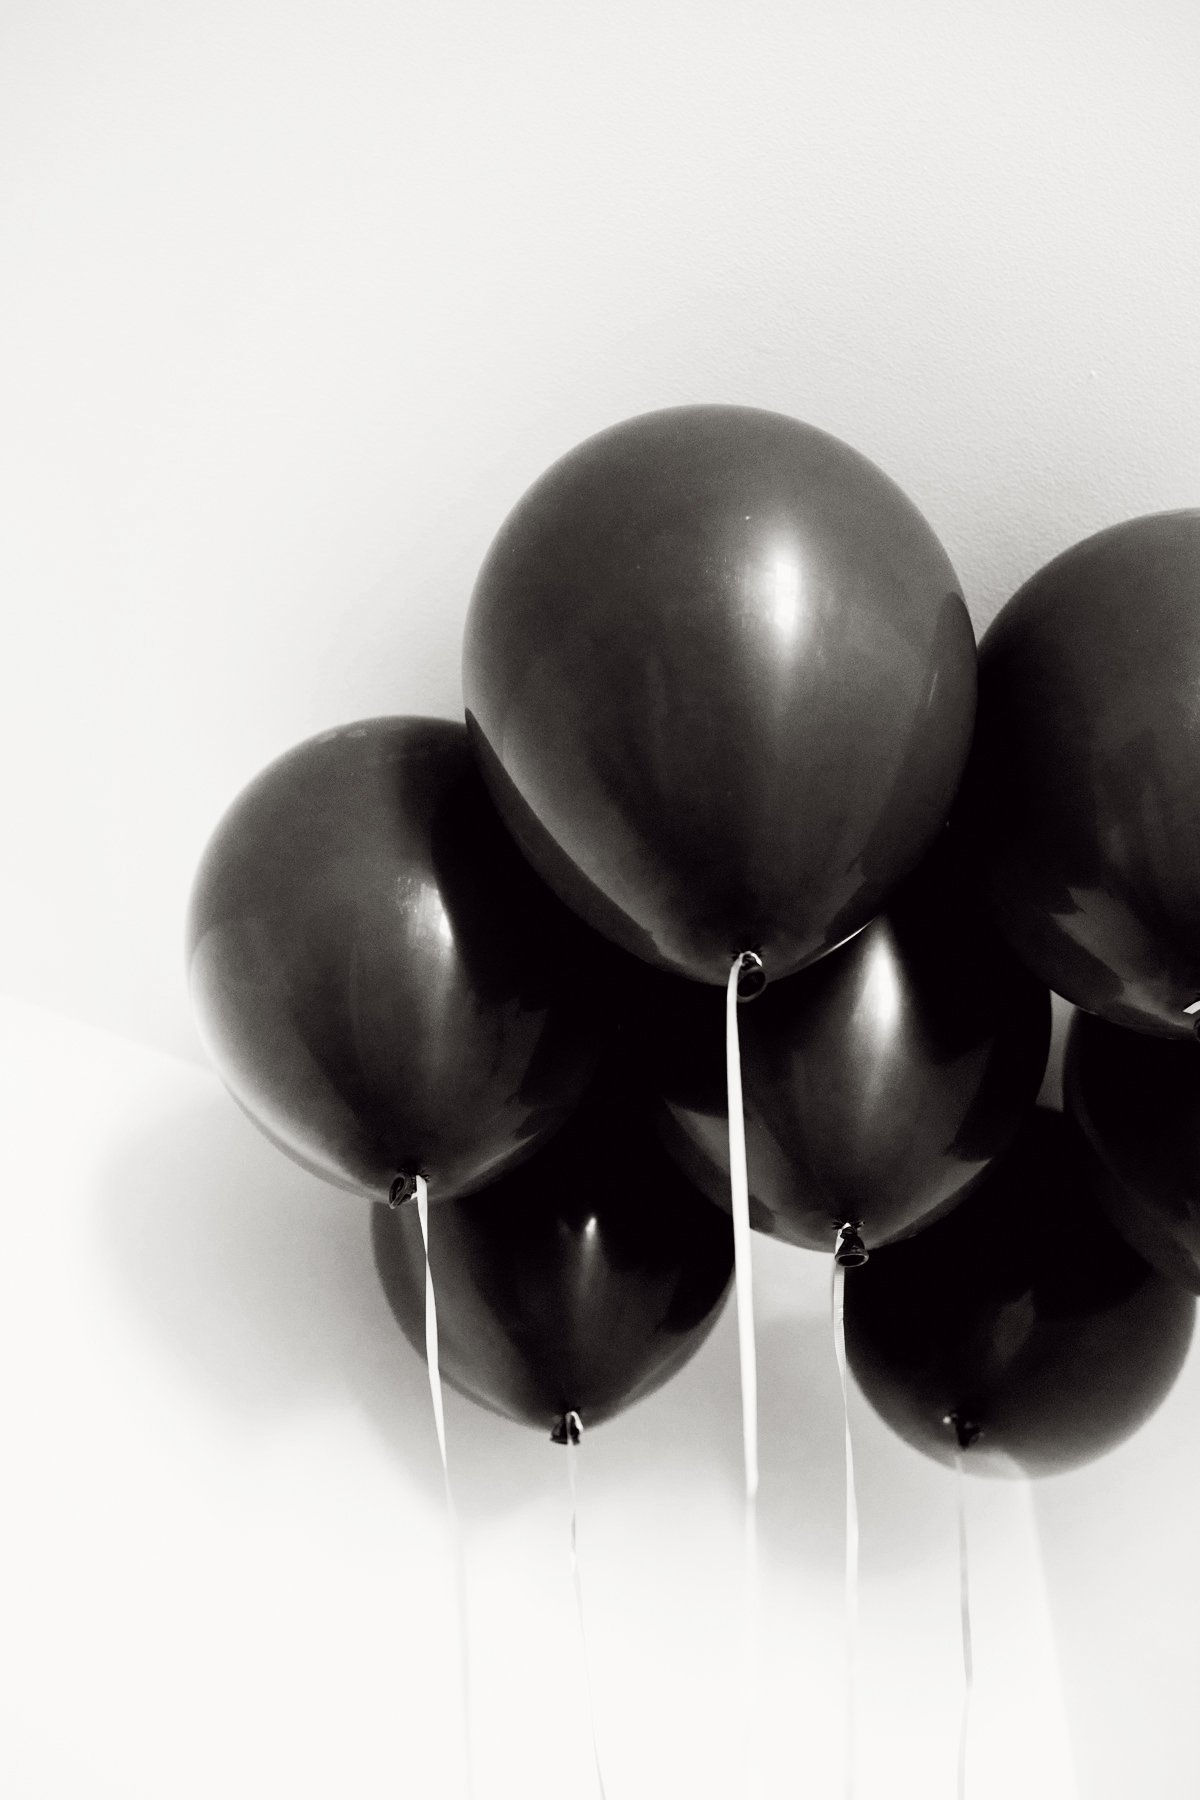 black balloons celebrate - you've come so far in your eCommerce Business